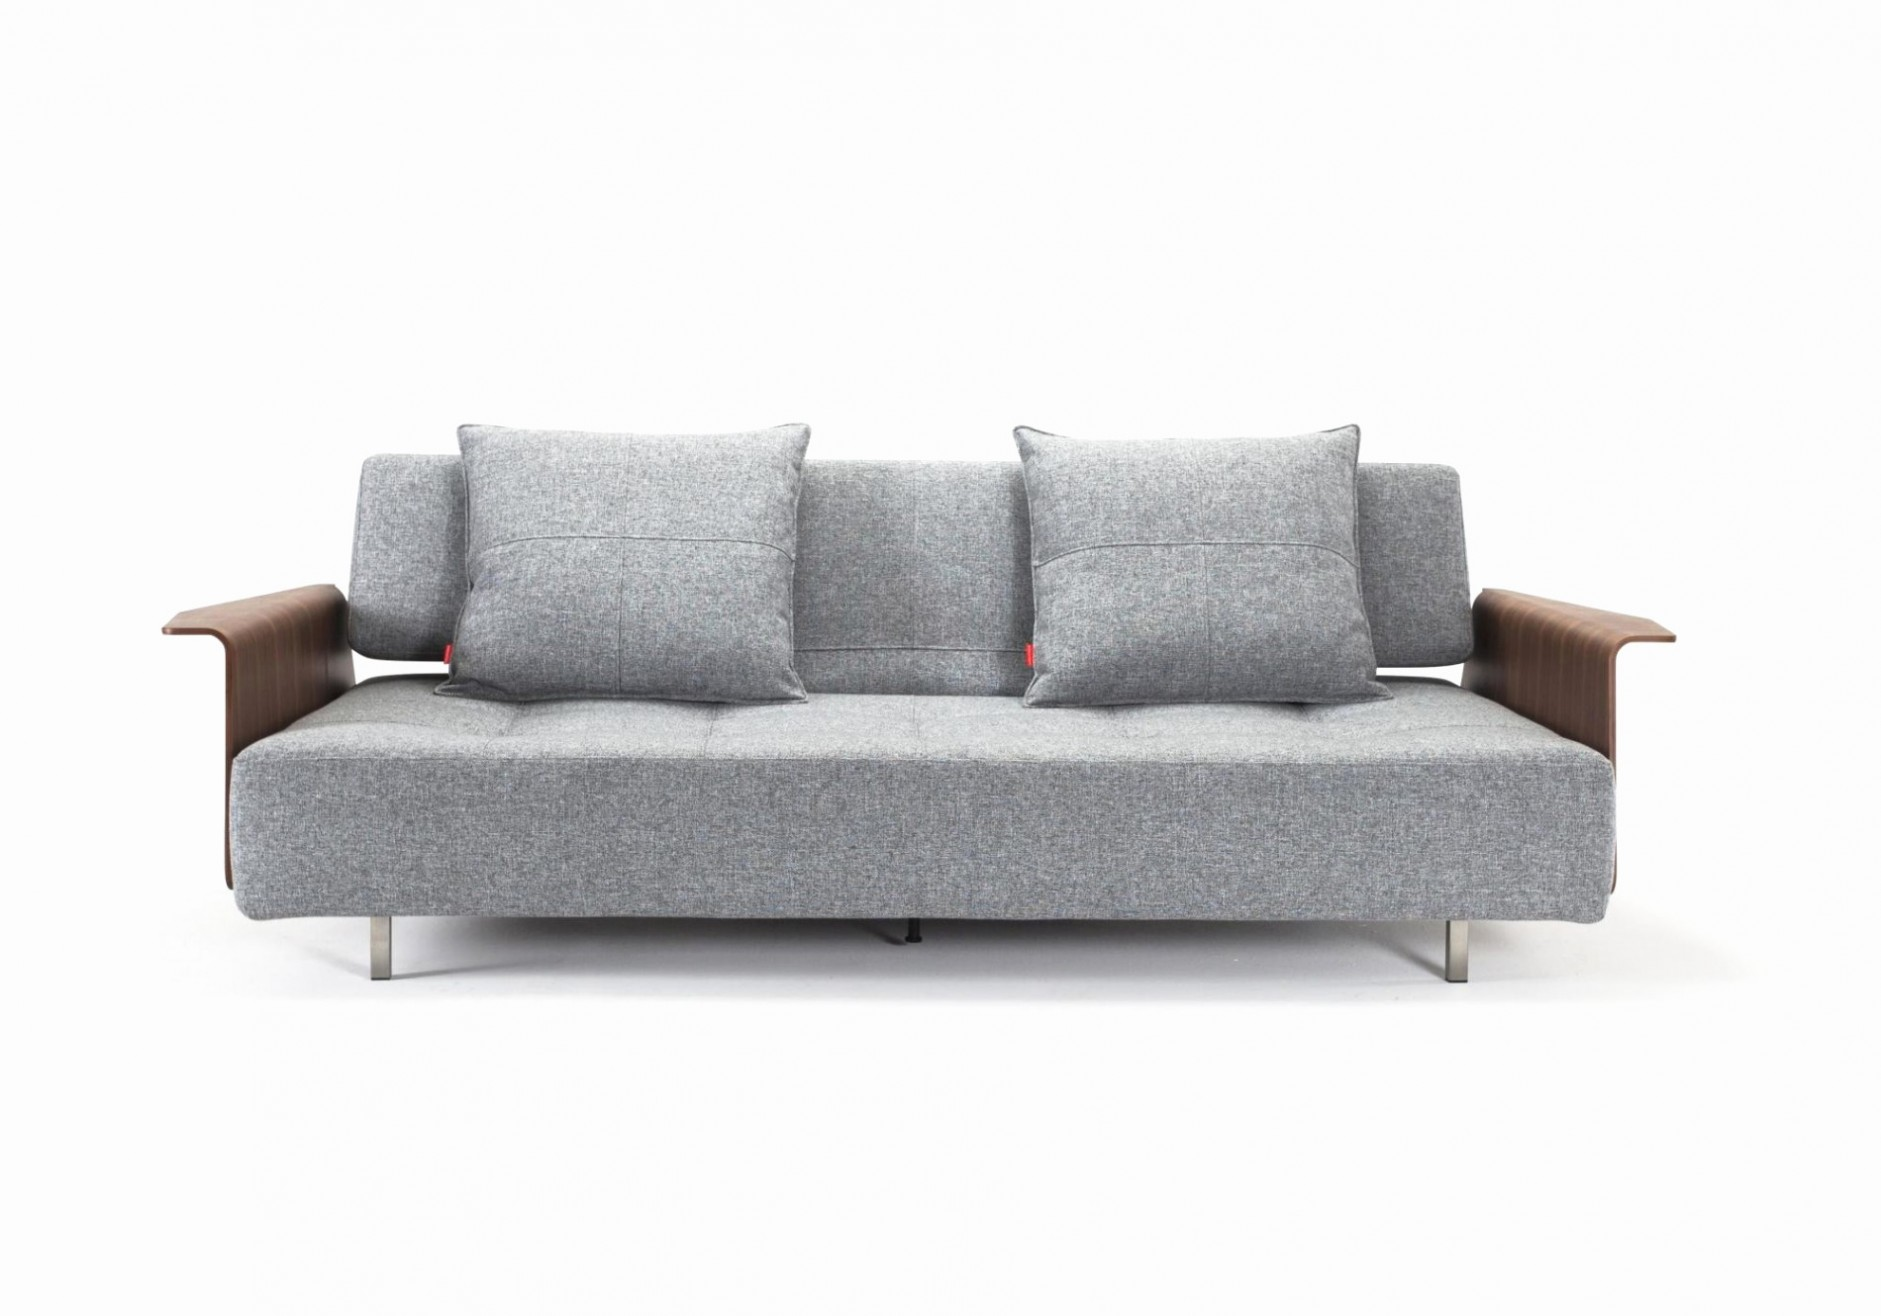 Couch L Form L Sofa Mit Awesome Beautiful Amazing Couch L Form Mit Lovely